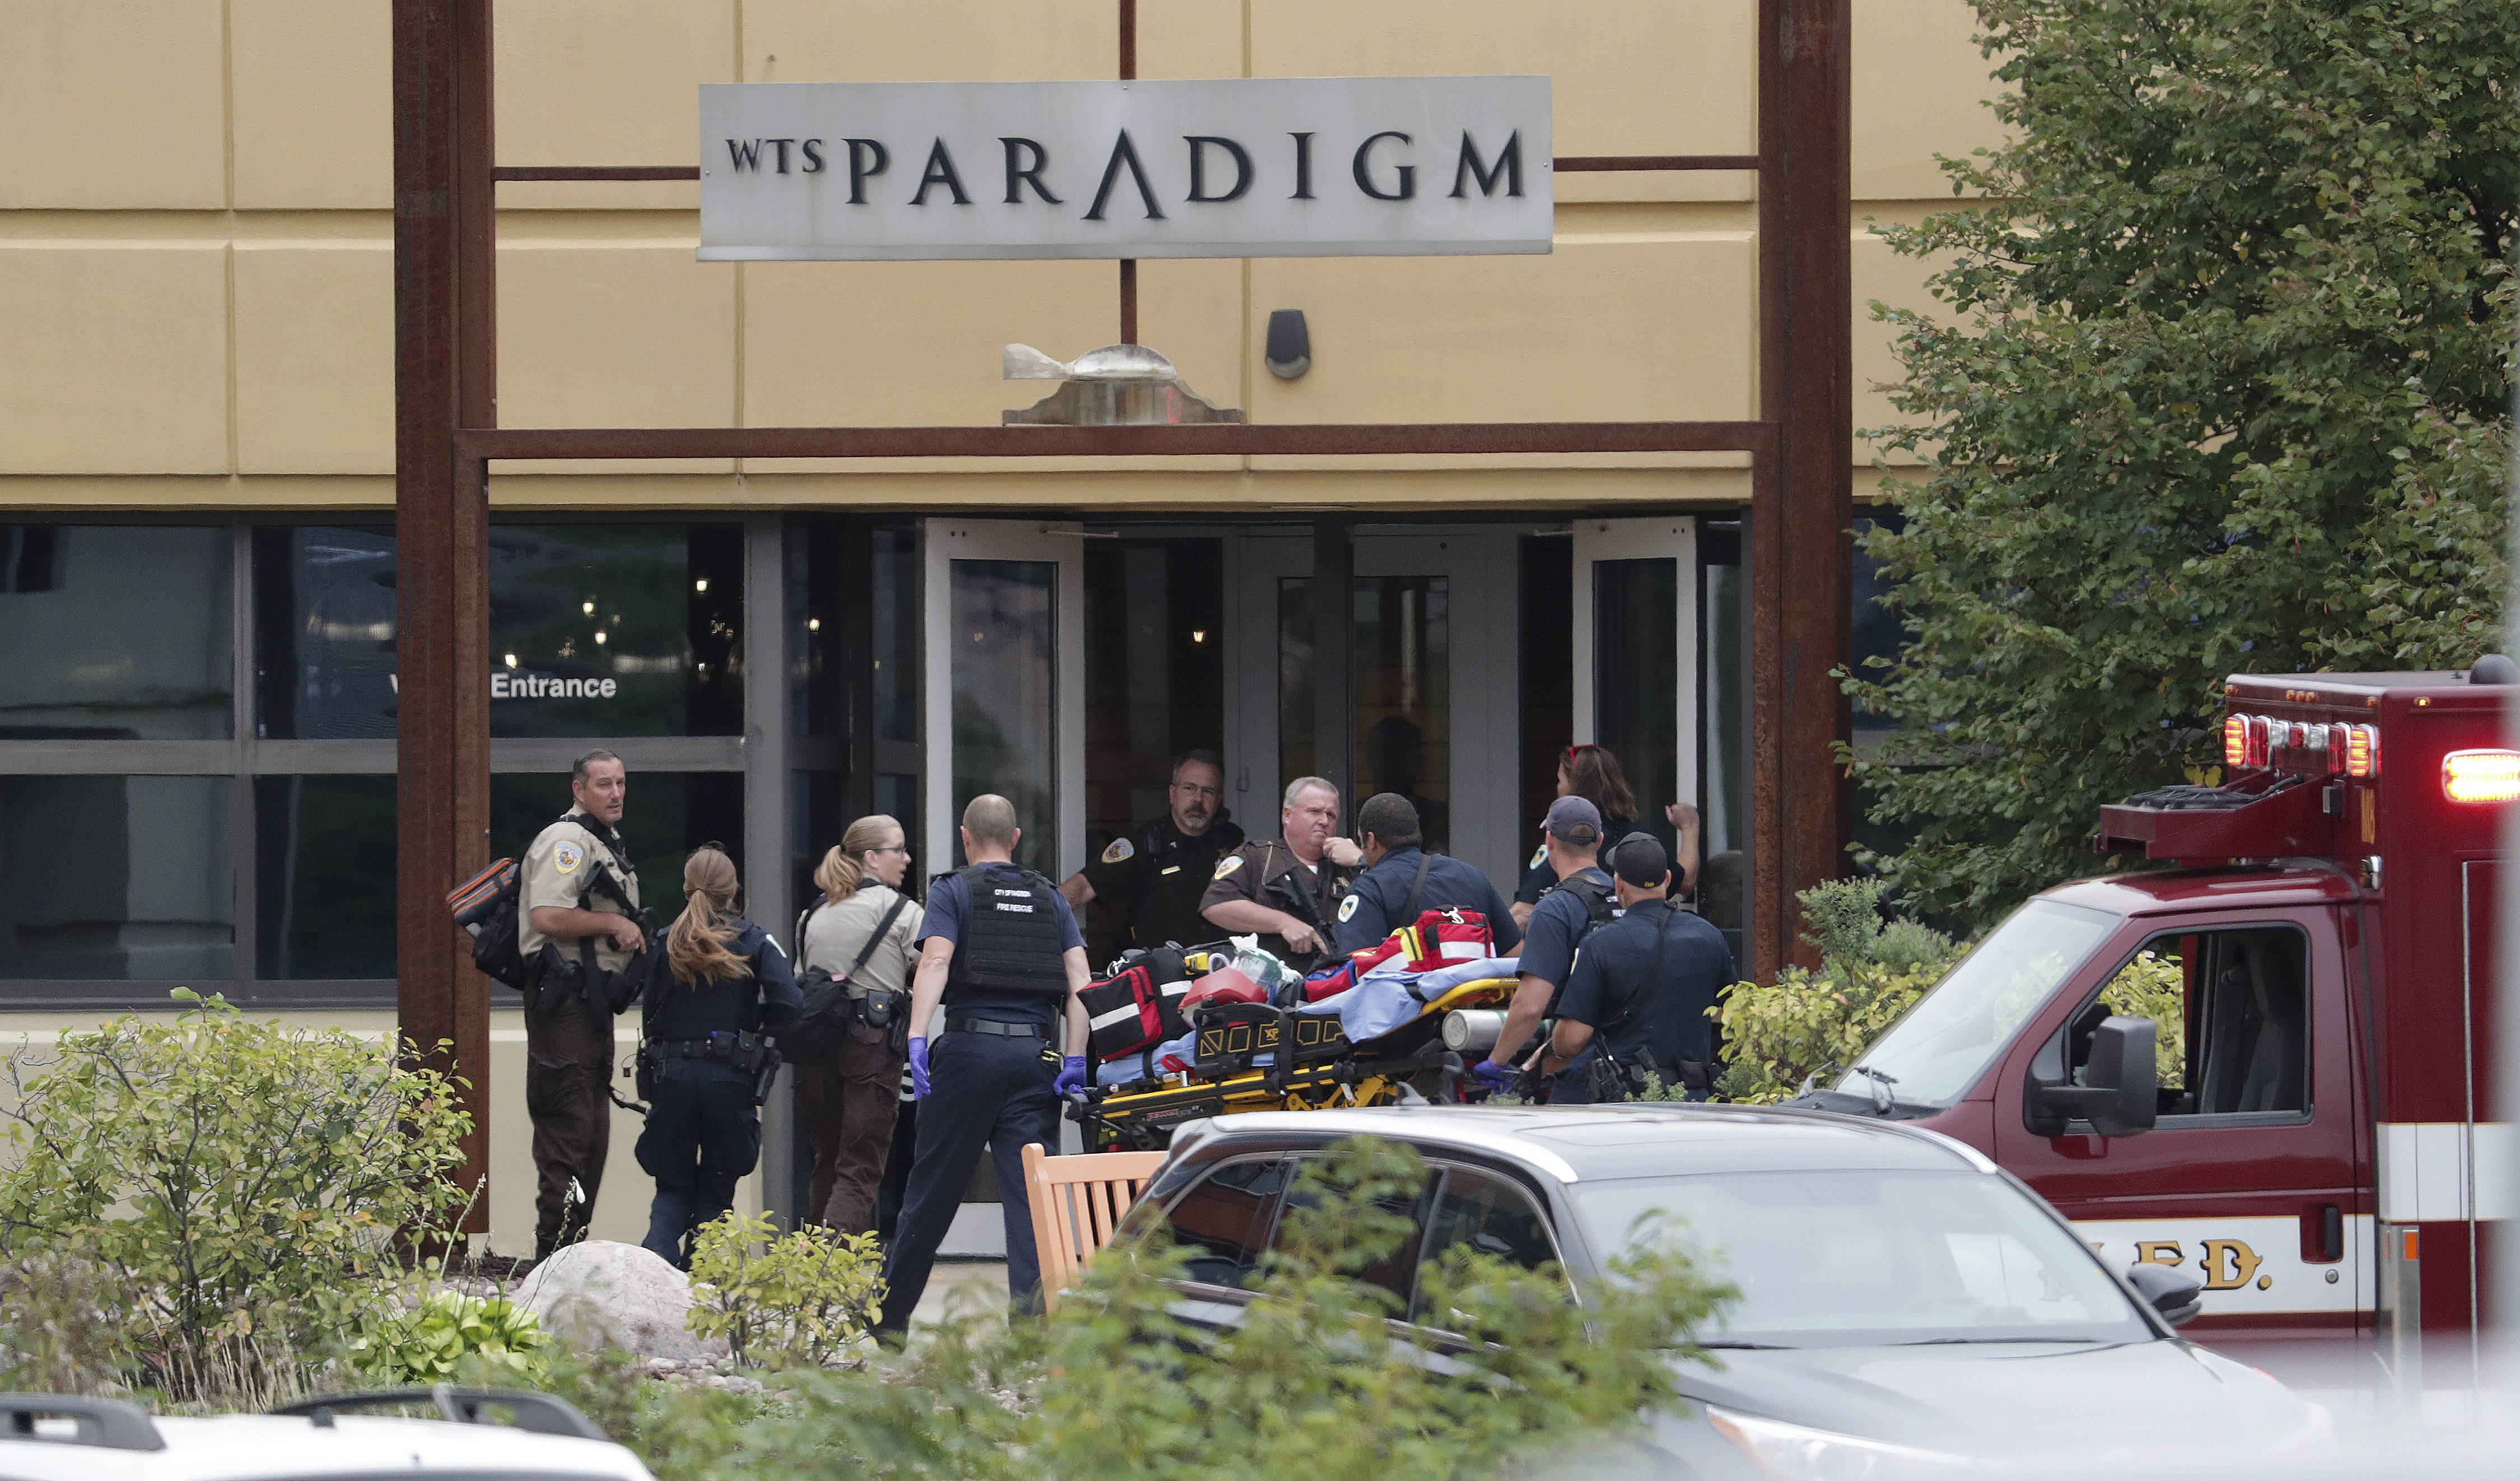 Emergency personnel arrive on the scene of a shooting at a software company in Middleton, Wis., Wednesday, Sept. 19, 2018. Four people were shot and wounded during the shooting in the suburb of Madison, according to a city administrator.